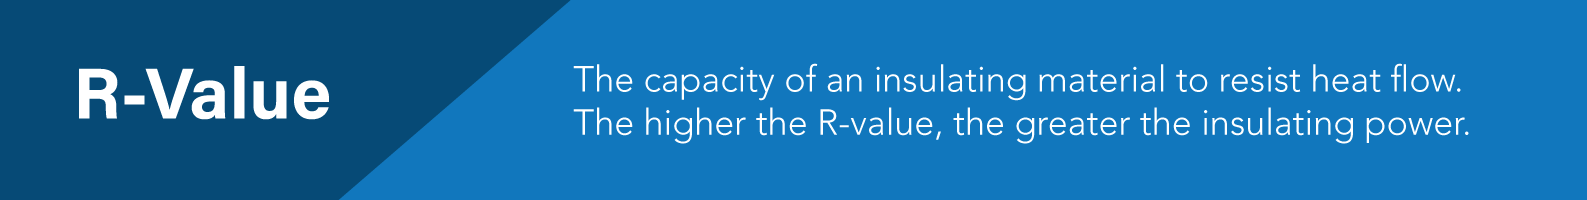 R-Value Definition